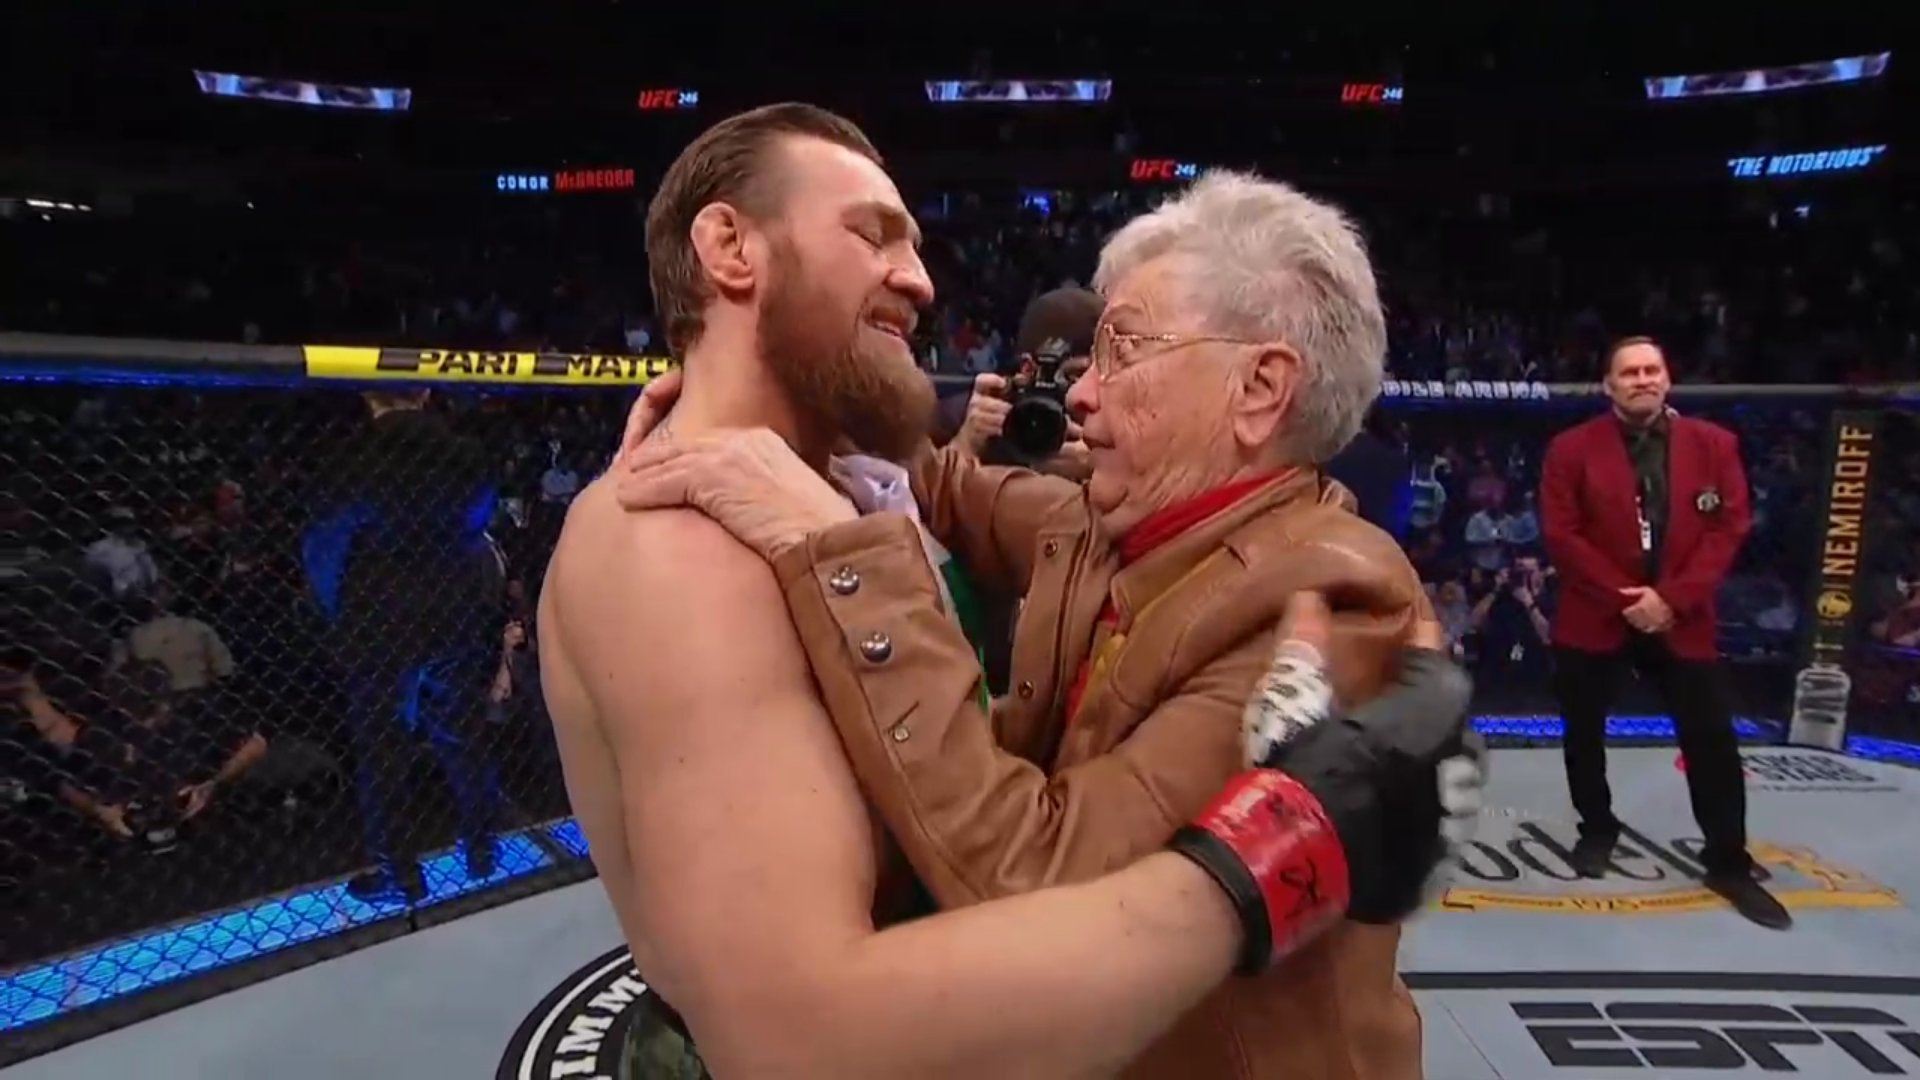 UFC News: Watch what Conor McGregor said to Donald Cerrone and his grandmother after UFC 246 win - Conor McGregor